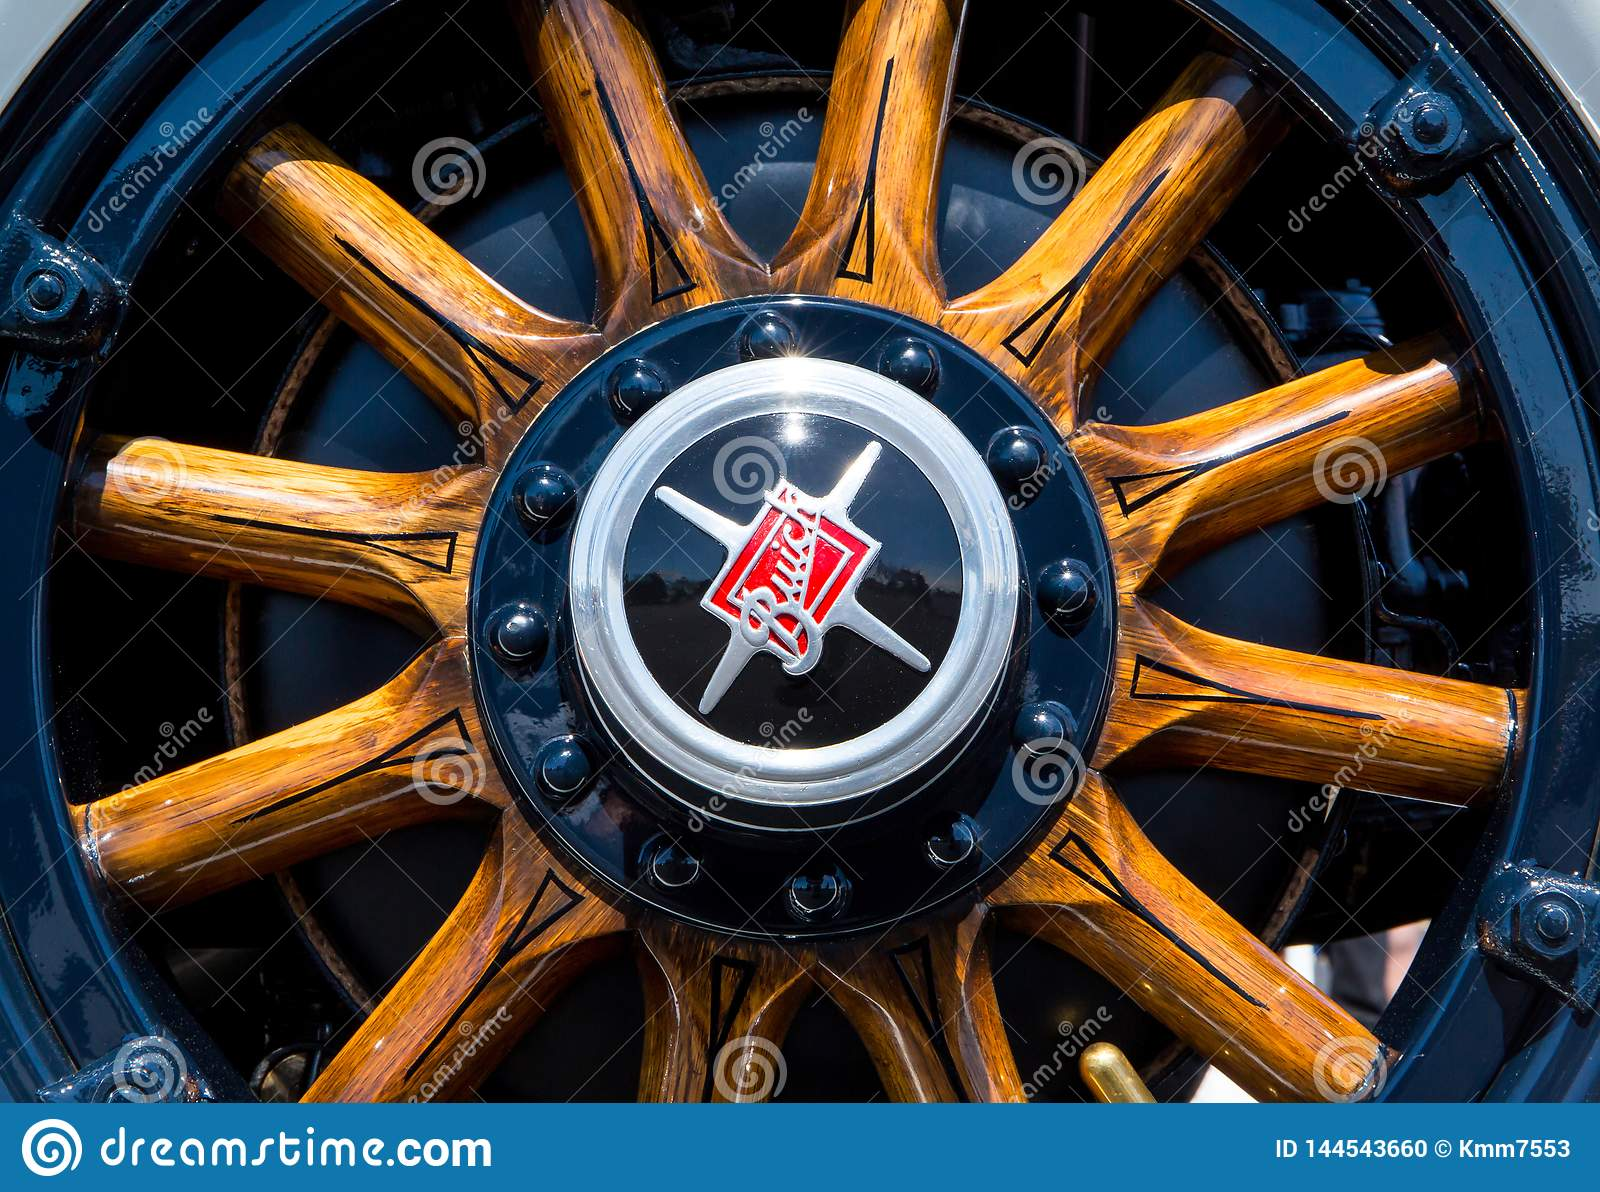 1929 Buick Automobile Wooden Wheel Editorial Image - Image